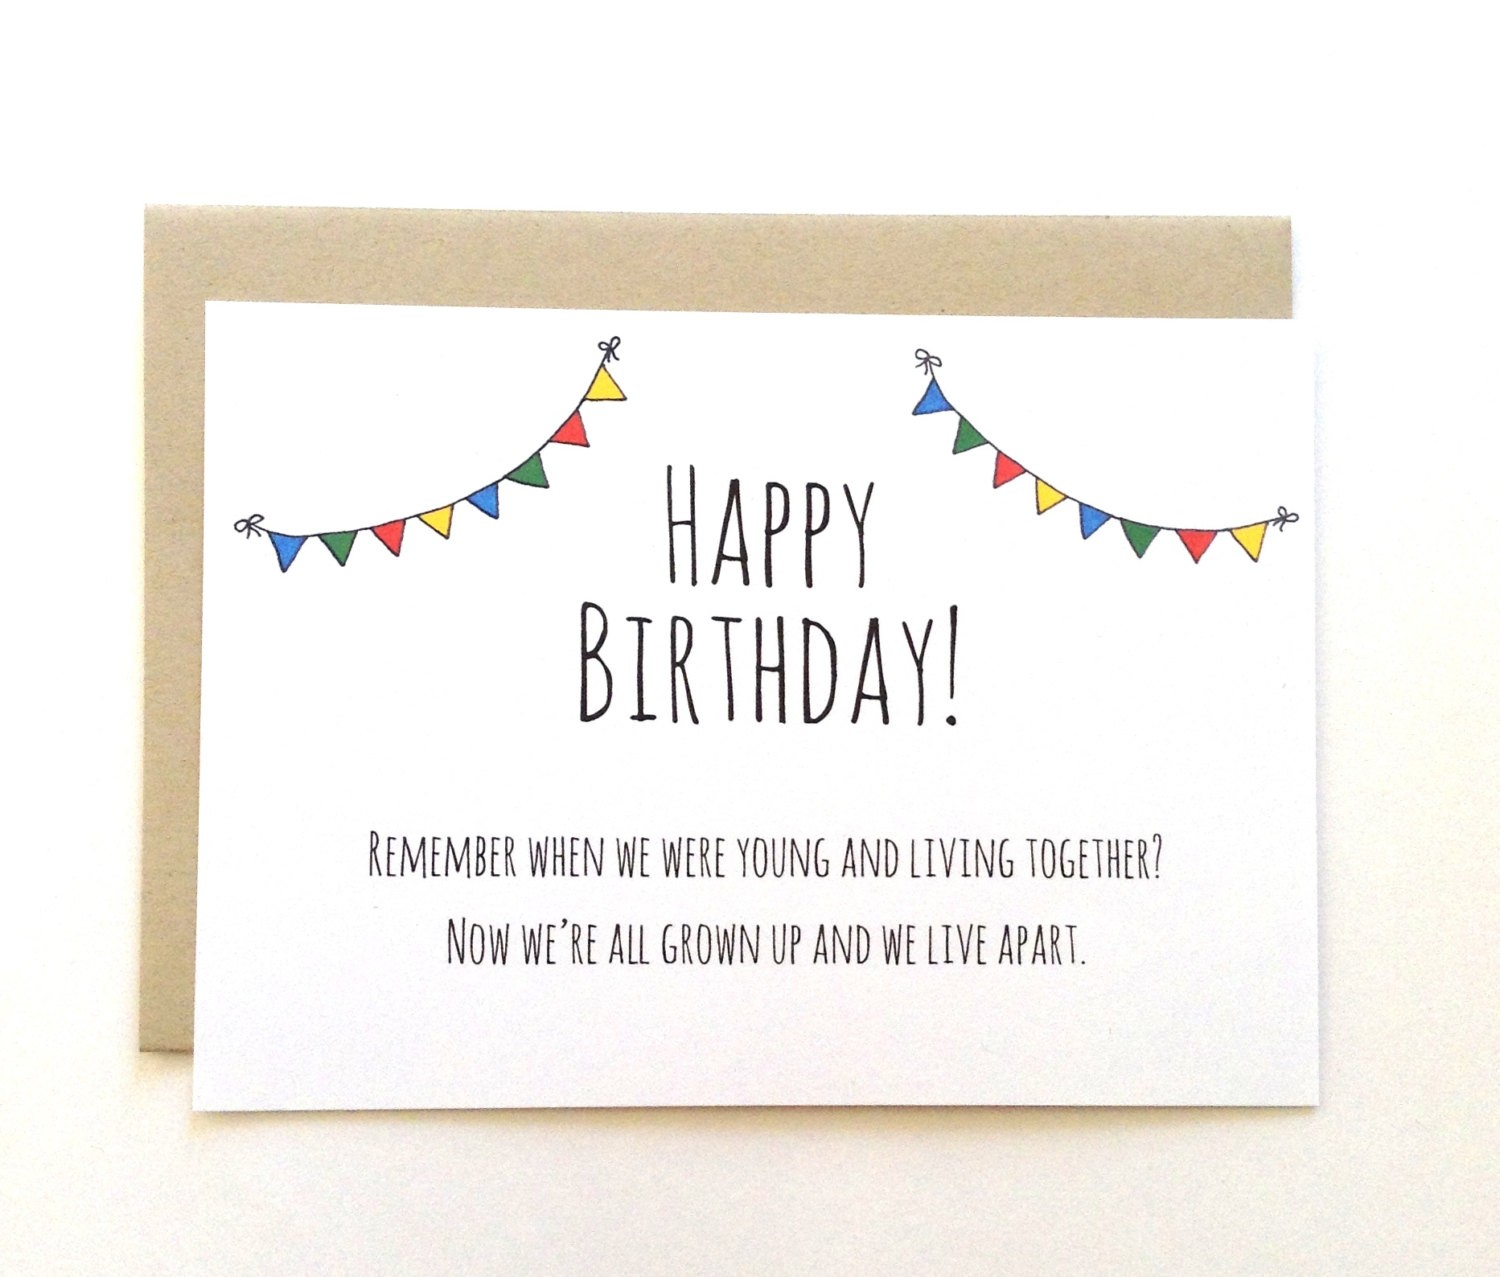 clever things to say on a birthday card ; clever-things-to-say-in-a-birthday-card-fresh-happy-birthday-brother-cards-best-funny-sister-card-of-clever-things-to-say-in-a-birthday-card